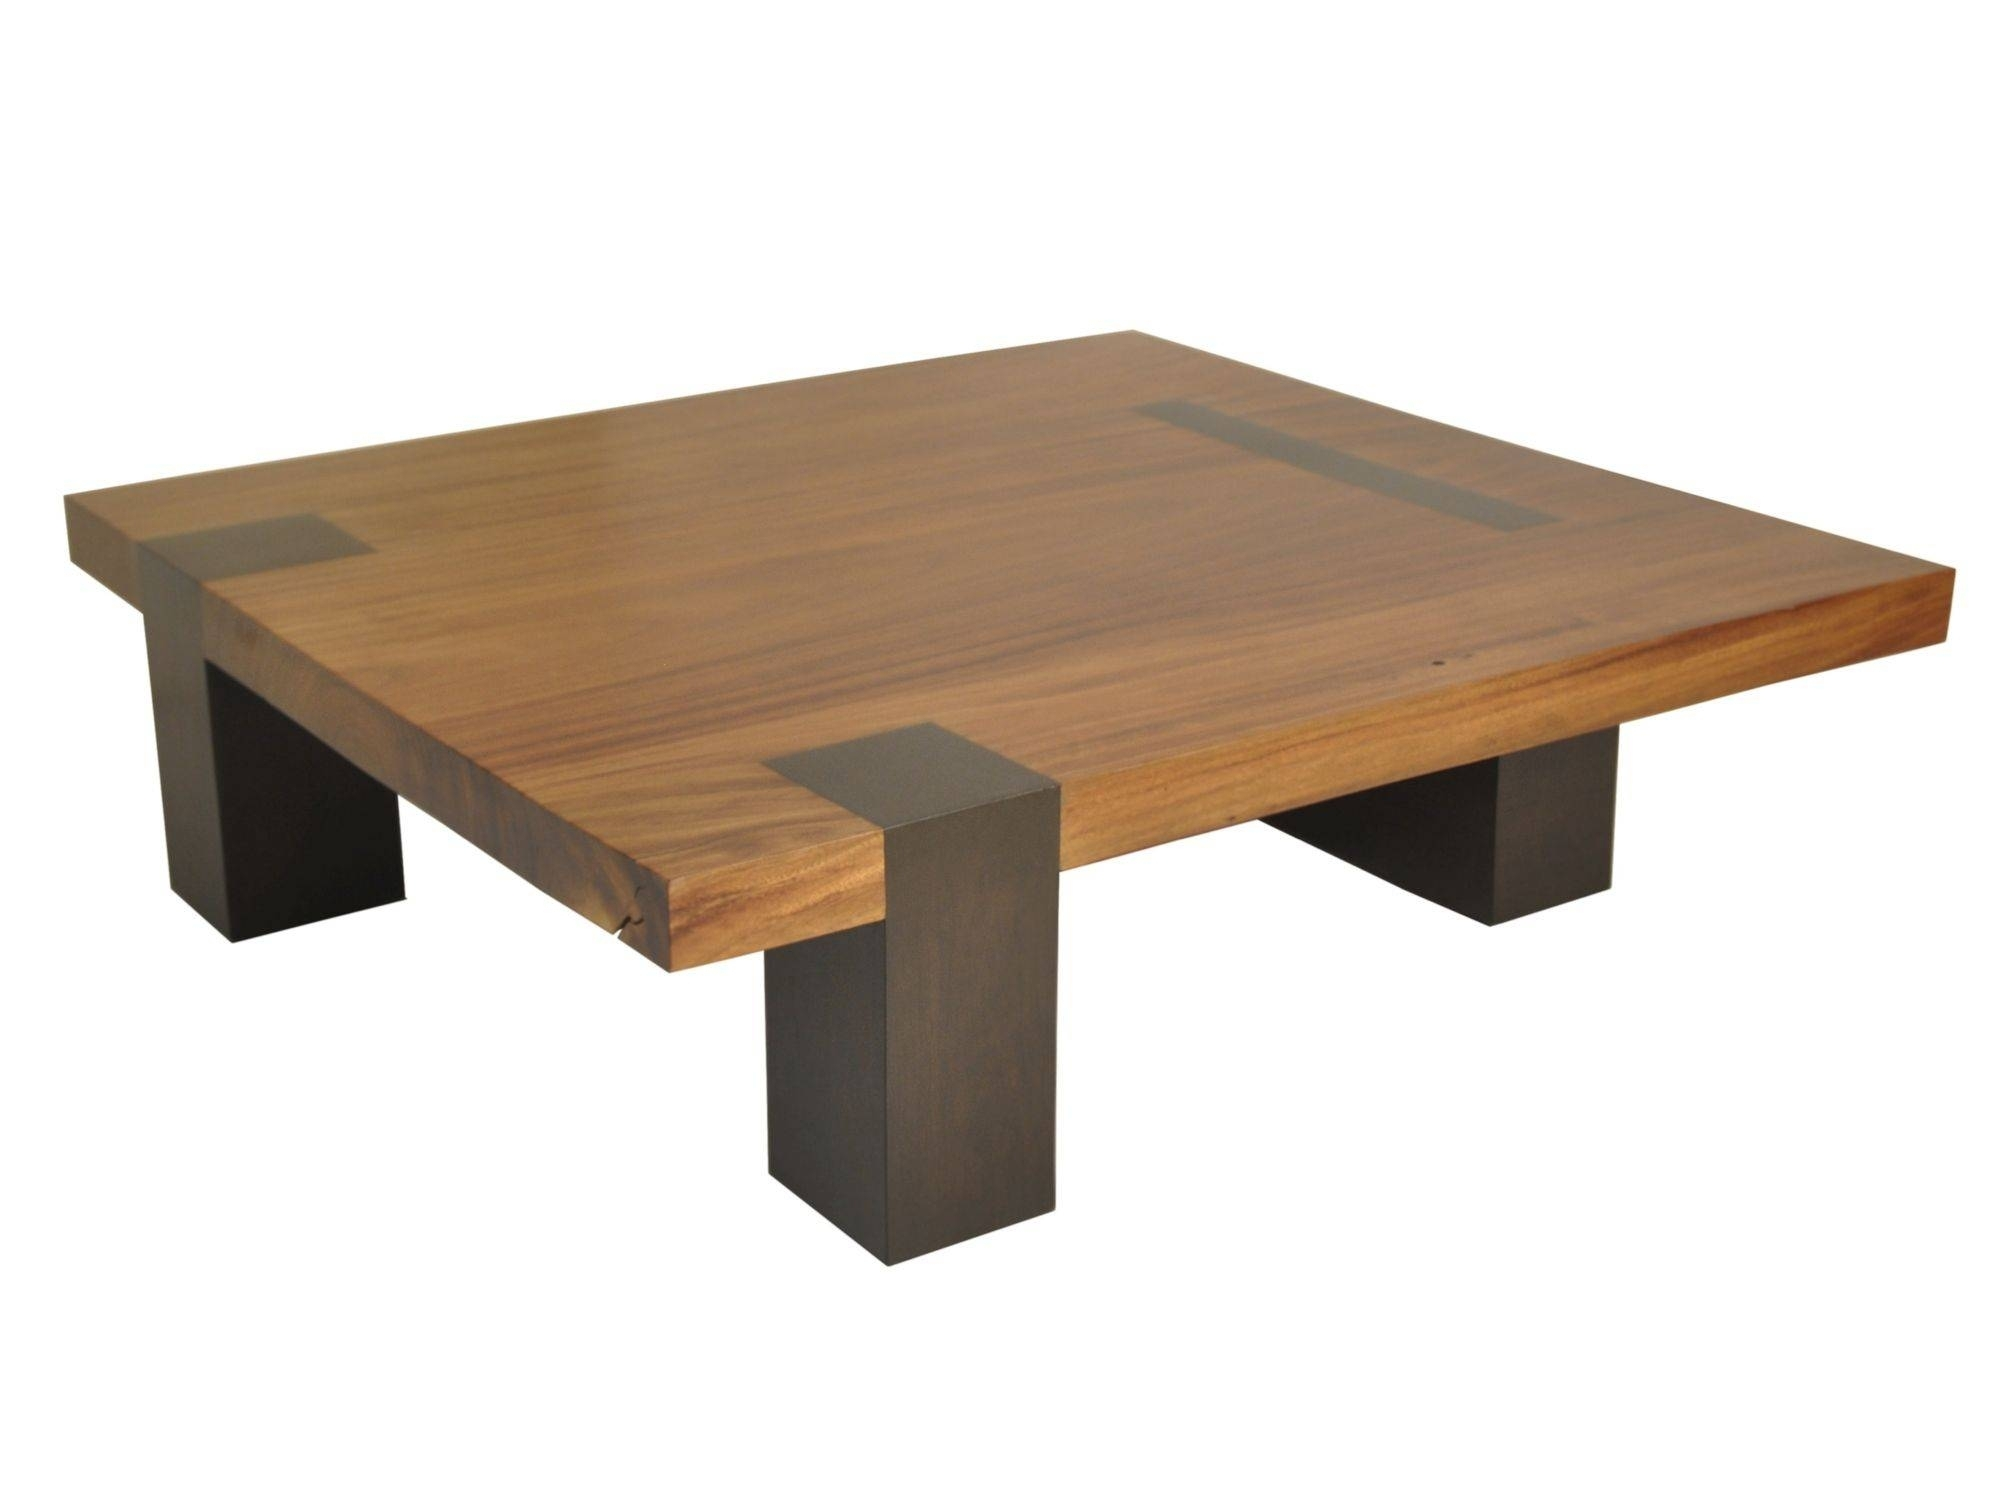 Superieur Square Contemporary Coffee Table 2